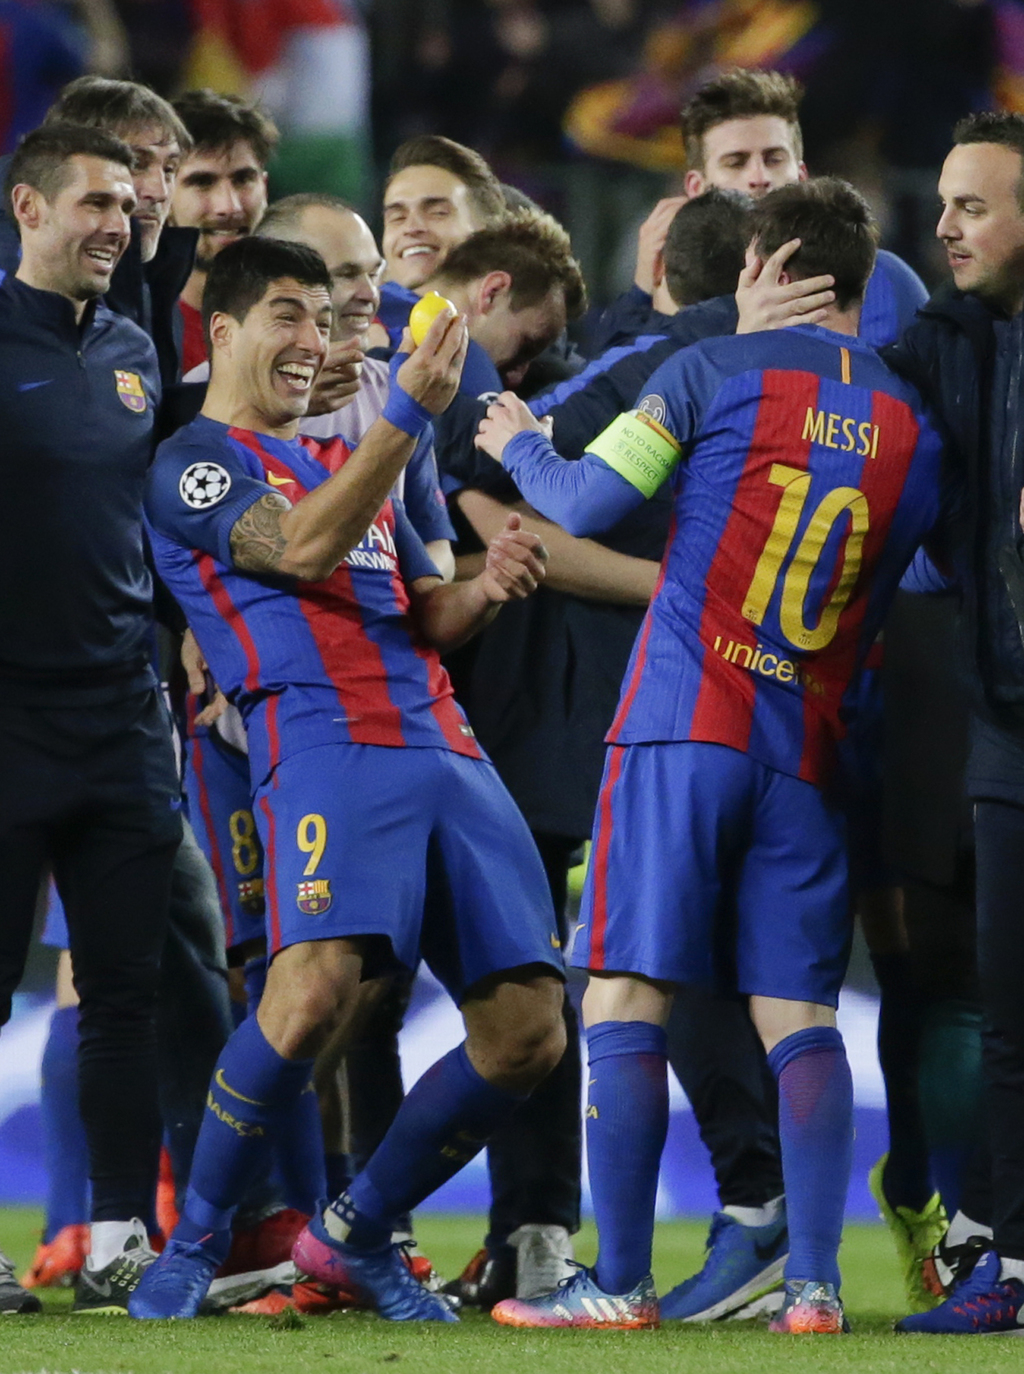 Barcelona's Luis Suarez, left, holds a lemon as he celebrates with his teammate Lionel Messi at the end of the Champions League round o...